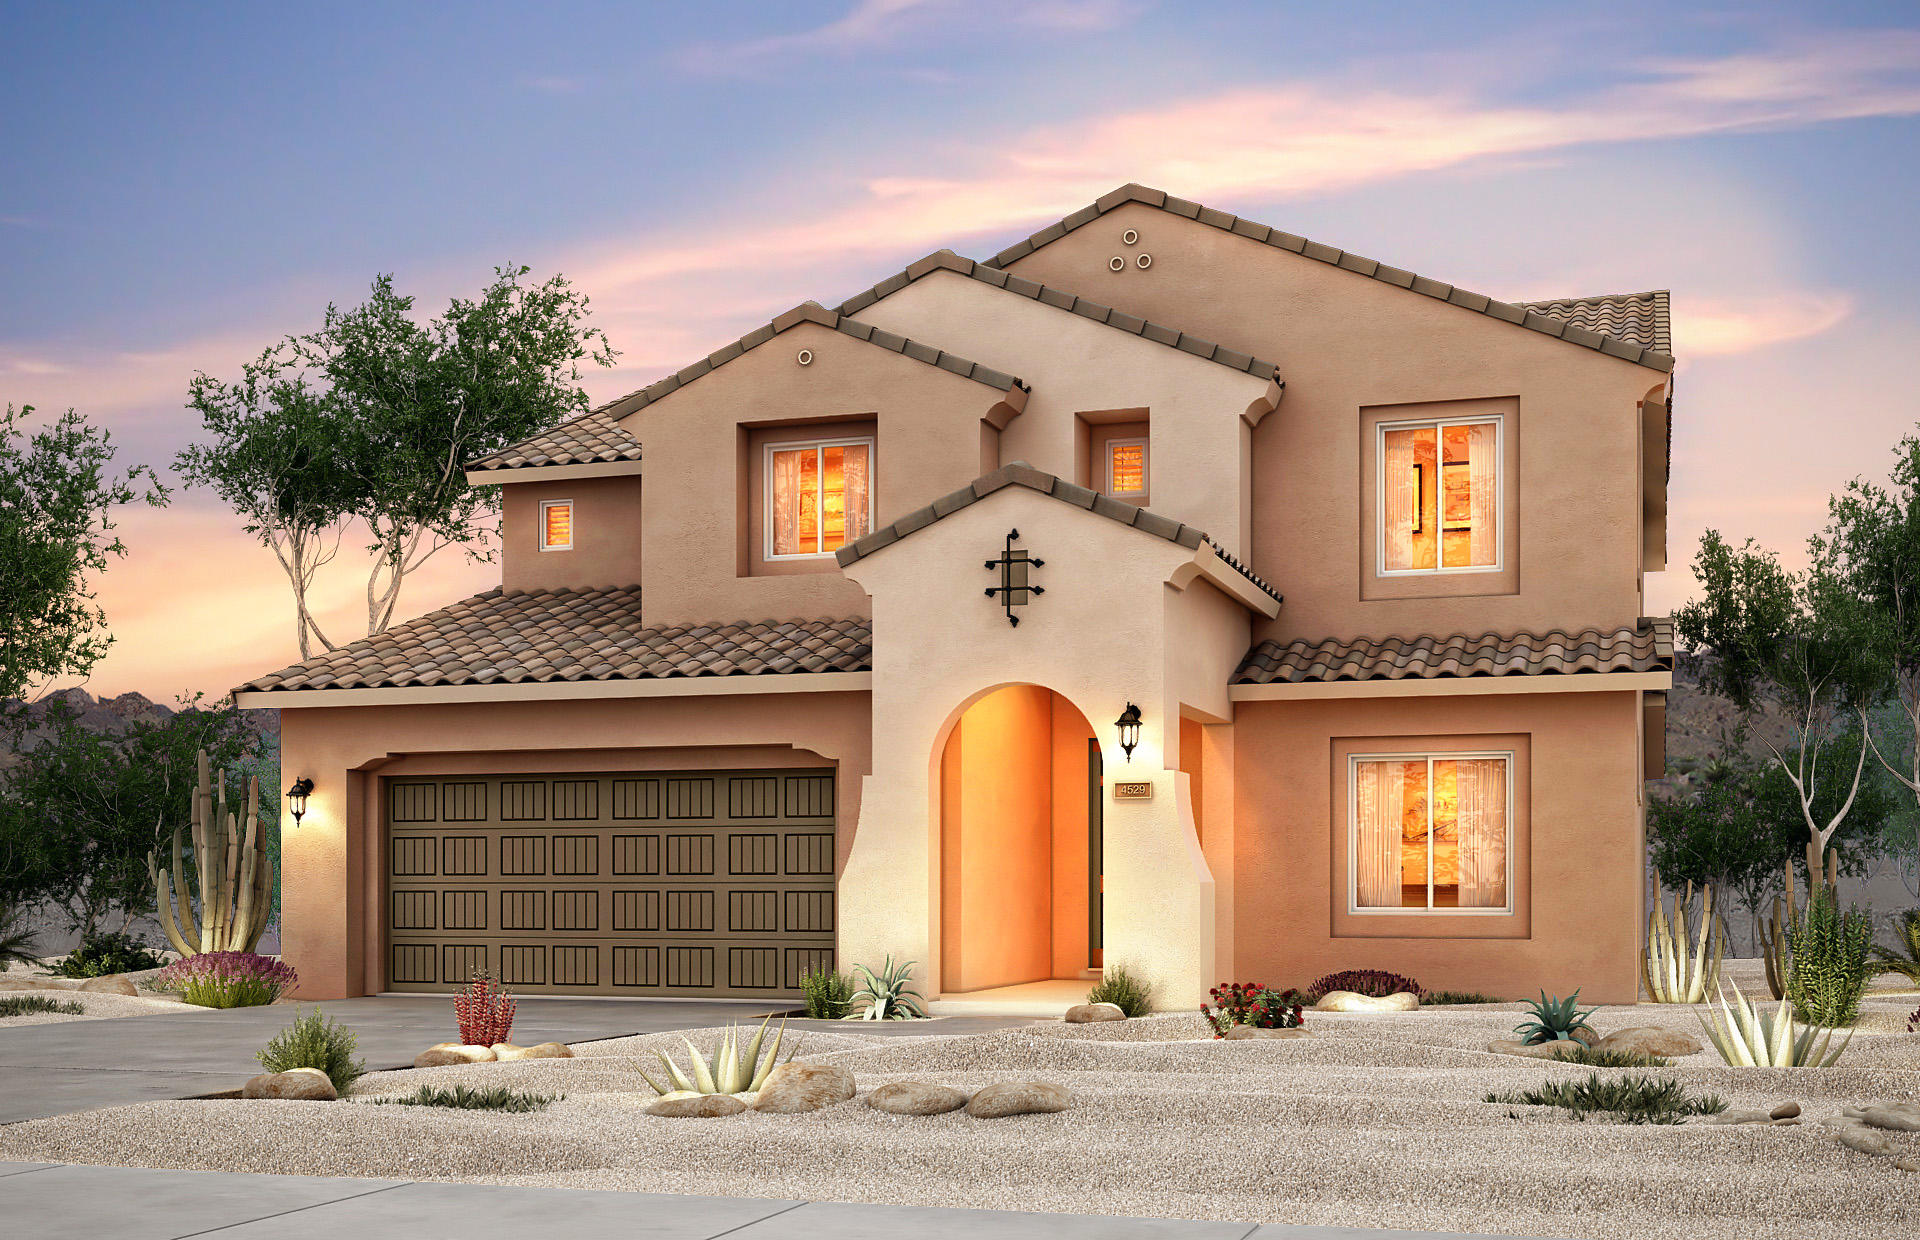 One of Northwest Albuquerque and Northwest Heights 4 Bedroom Homes for Sale at 6731 NW Piedra Aspero Street